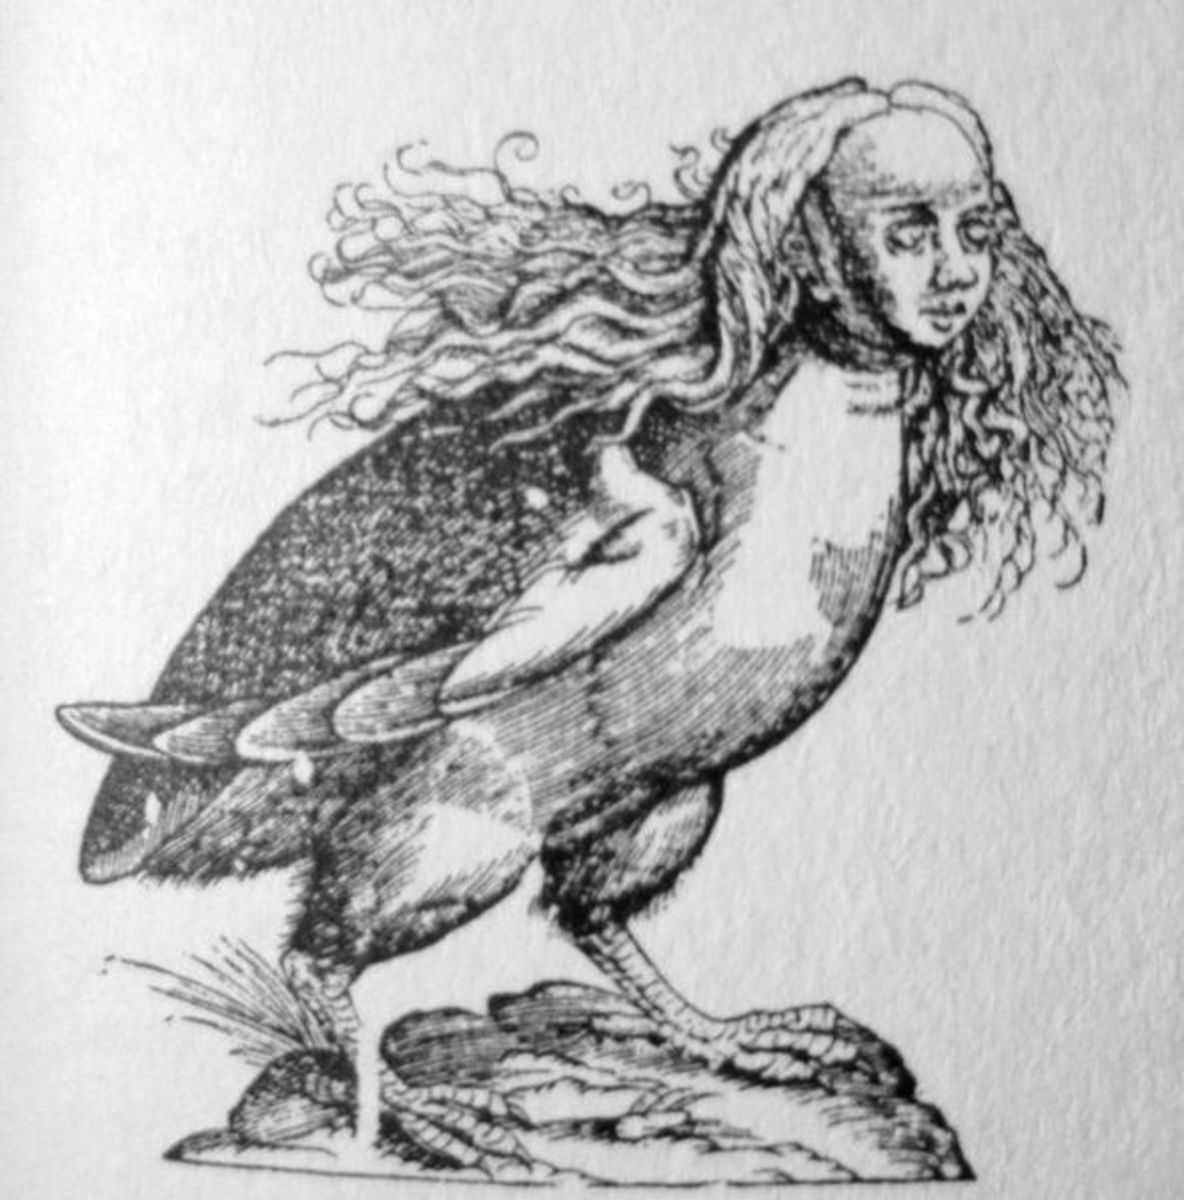 A harpy